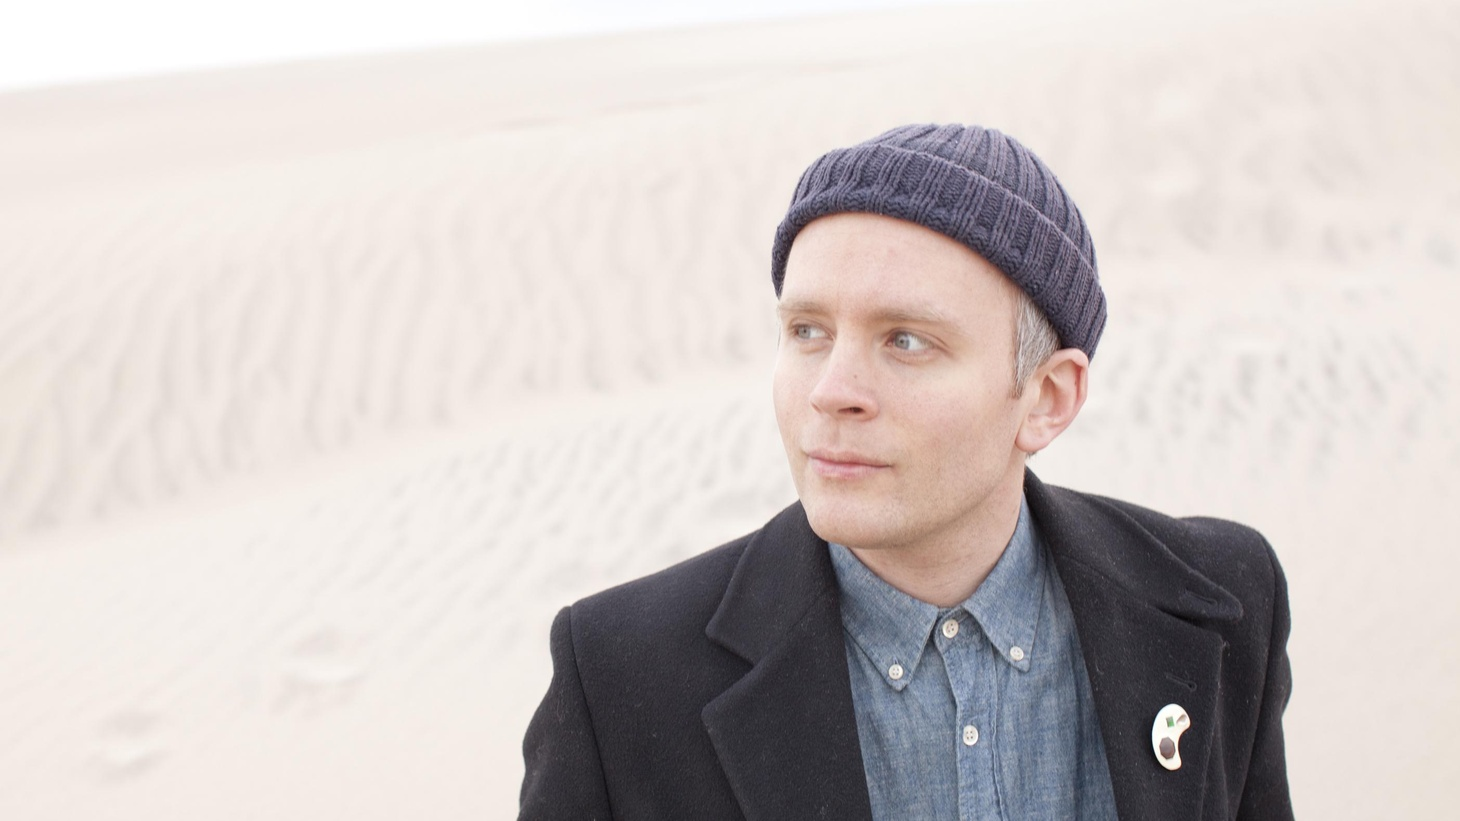 Everything but the Girl's Tracy Thorn is so fond of songwriter Jens Lekman that she wrote a song for him, a message about love. He wrote a song for her in return...